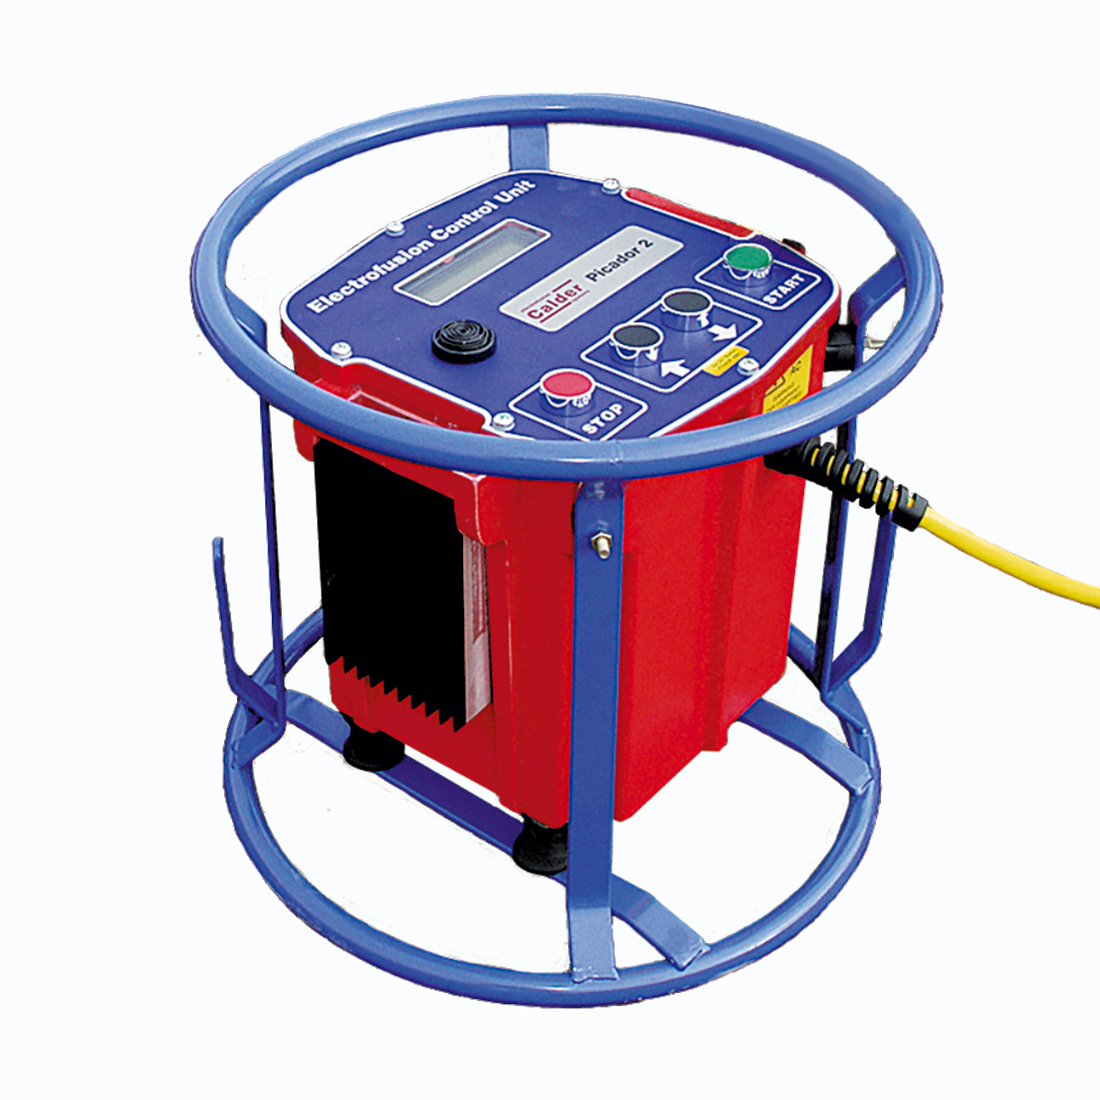 Electrofusion Pipe Welder and Generator